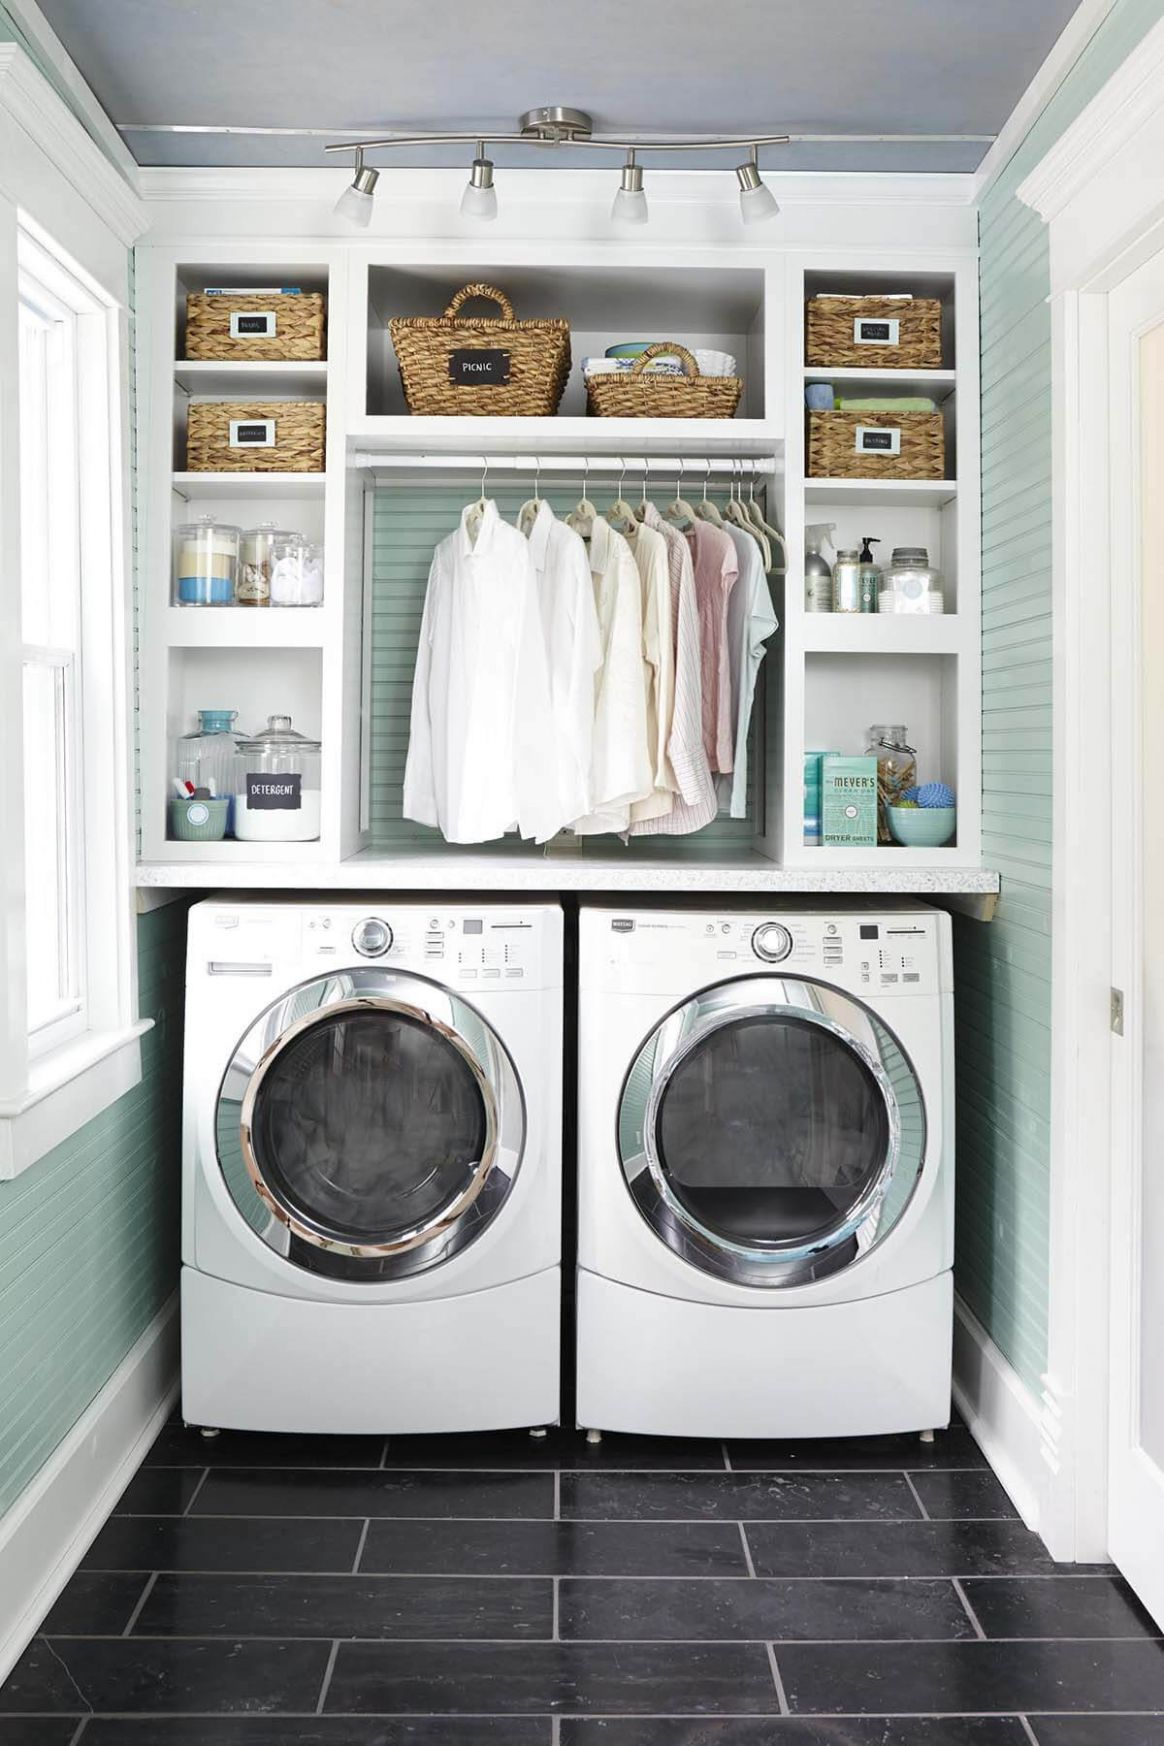 12 Best Small Laundry Room Design Ideas for 12 - laundry room ideas pictures